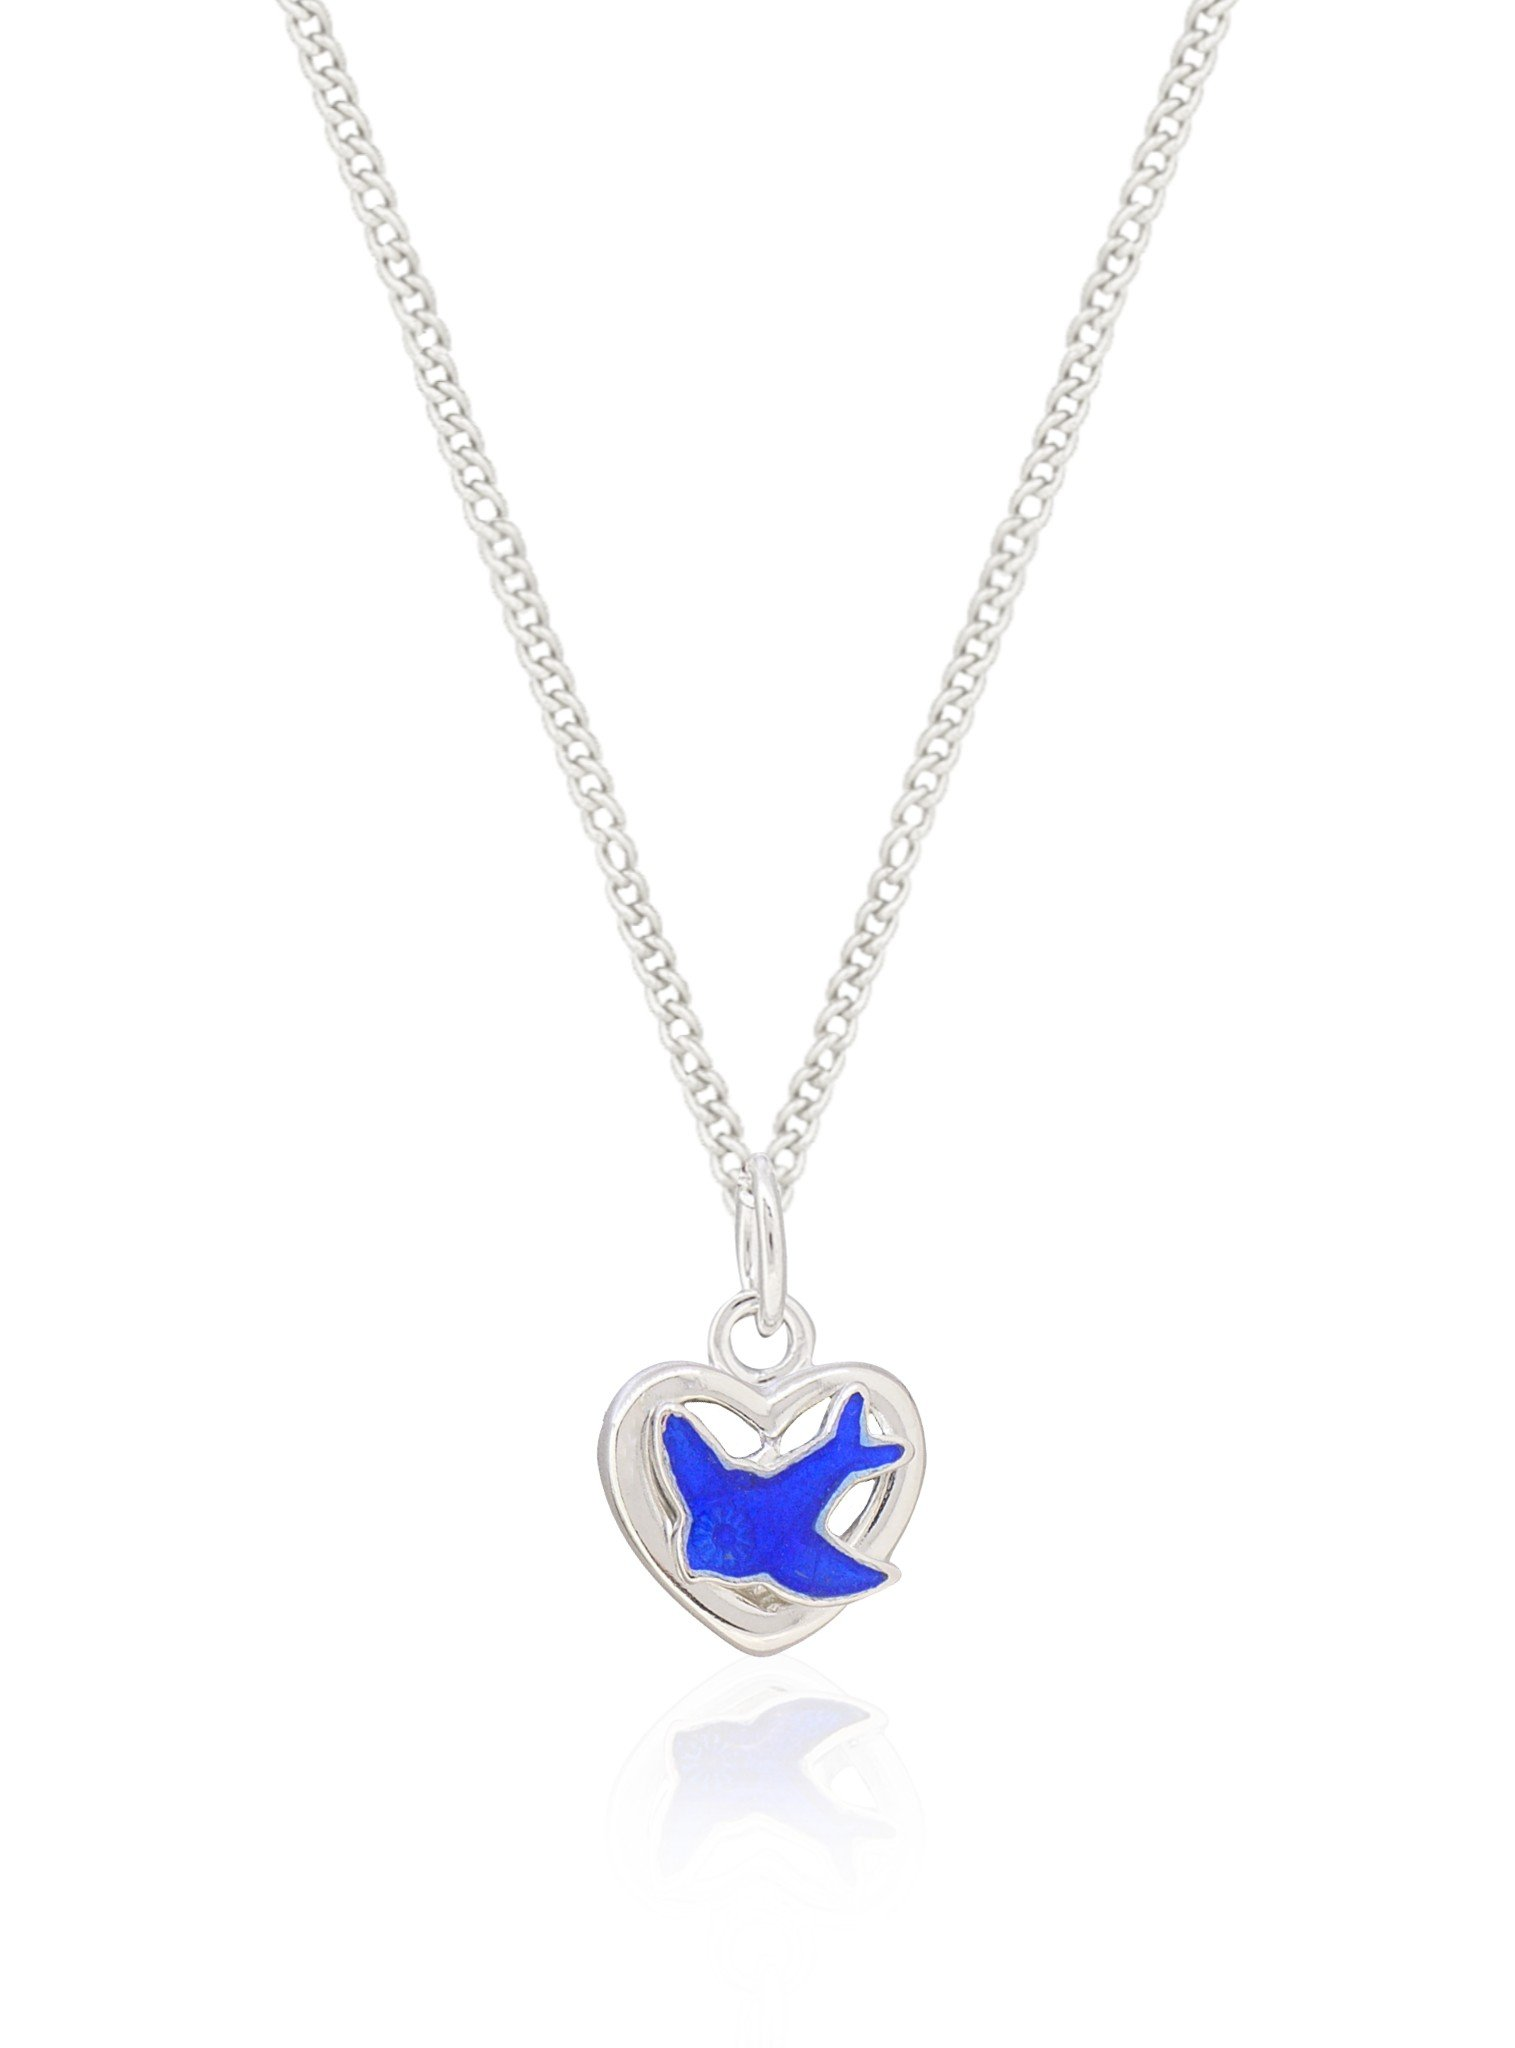 Bluebird Heart Charm Necklace in Sterling Silver